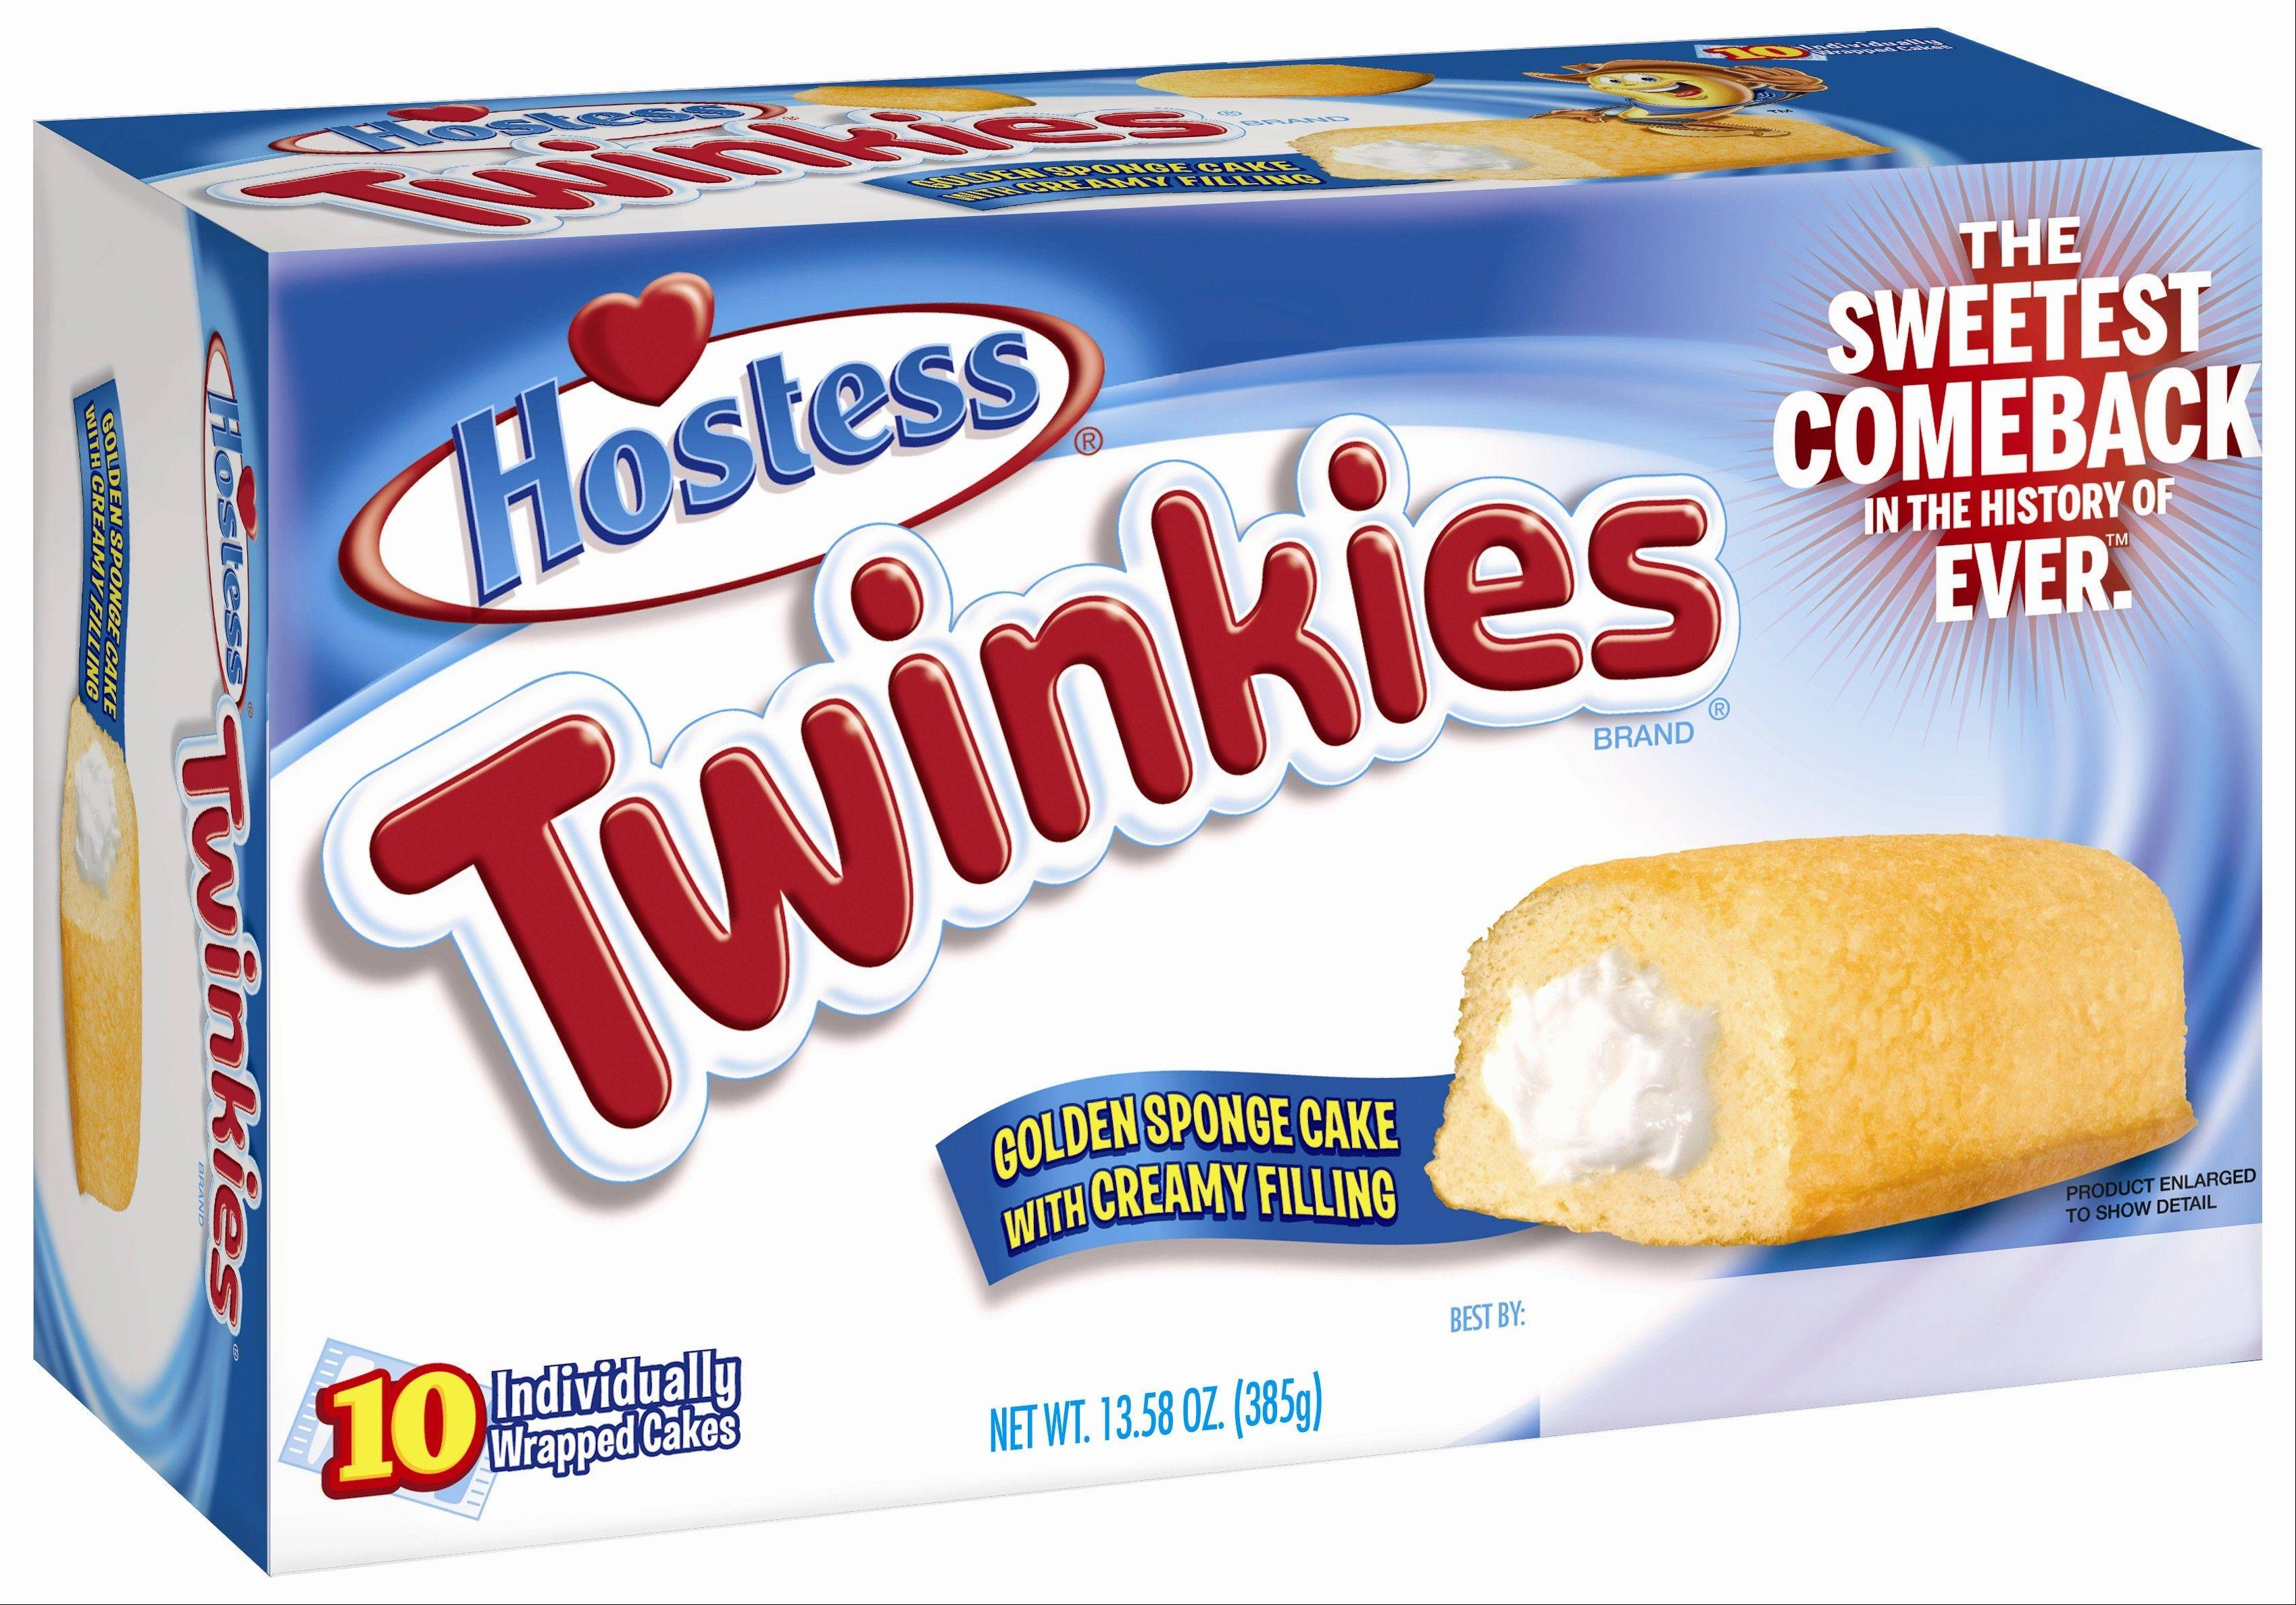 Twinkies will be back on shelves by July 15, 2013, after its predecessor company went bankrupt after an acrimonious fight with unions last year. The brands have since been purchased by Metropoulos & Co. and Apollo Global Management.